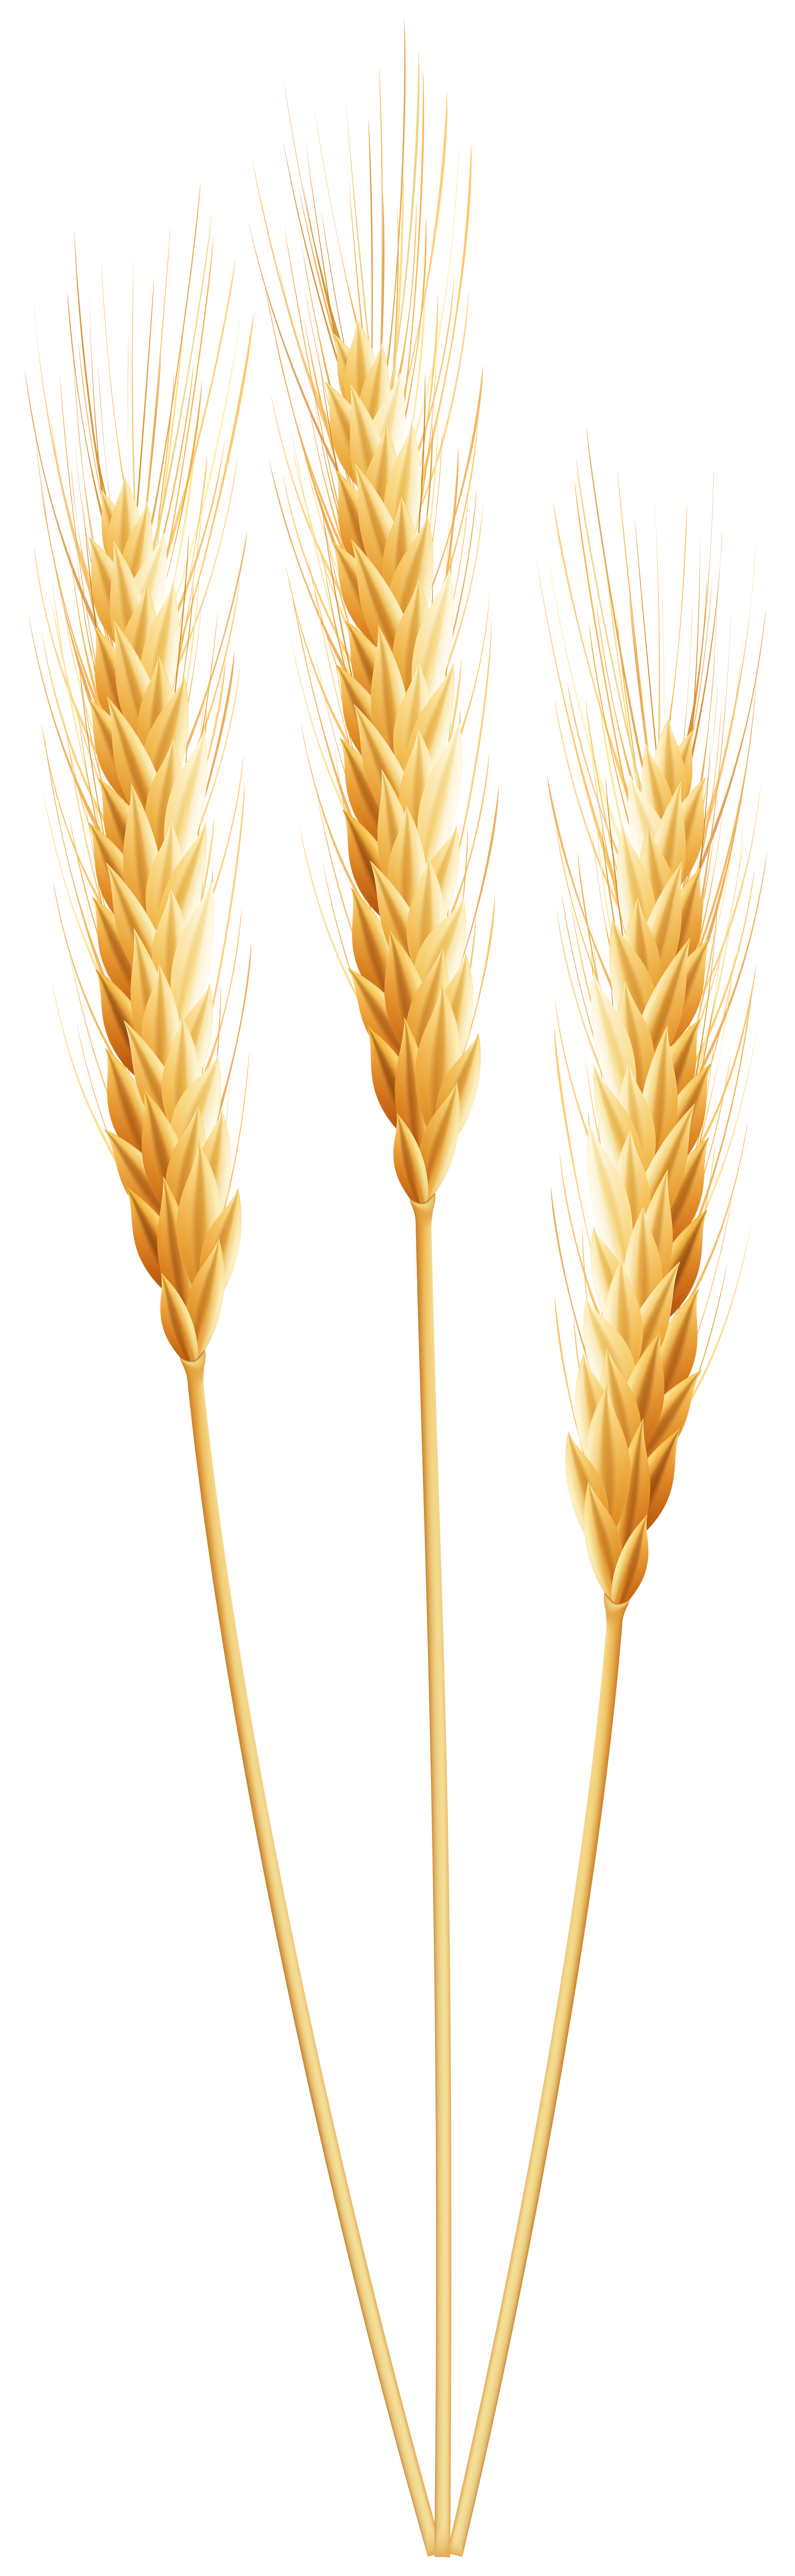 Wheat PNG Clip Art Image.